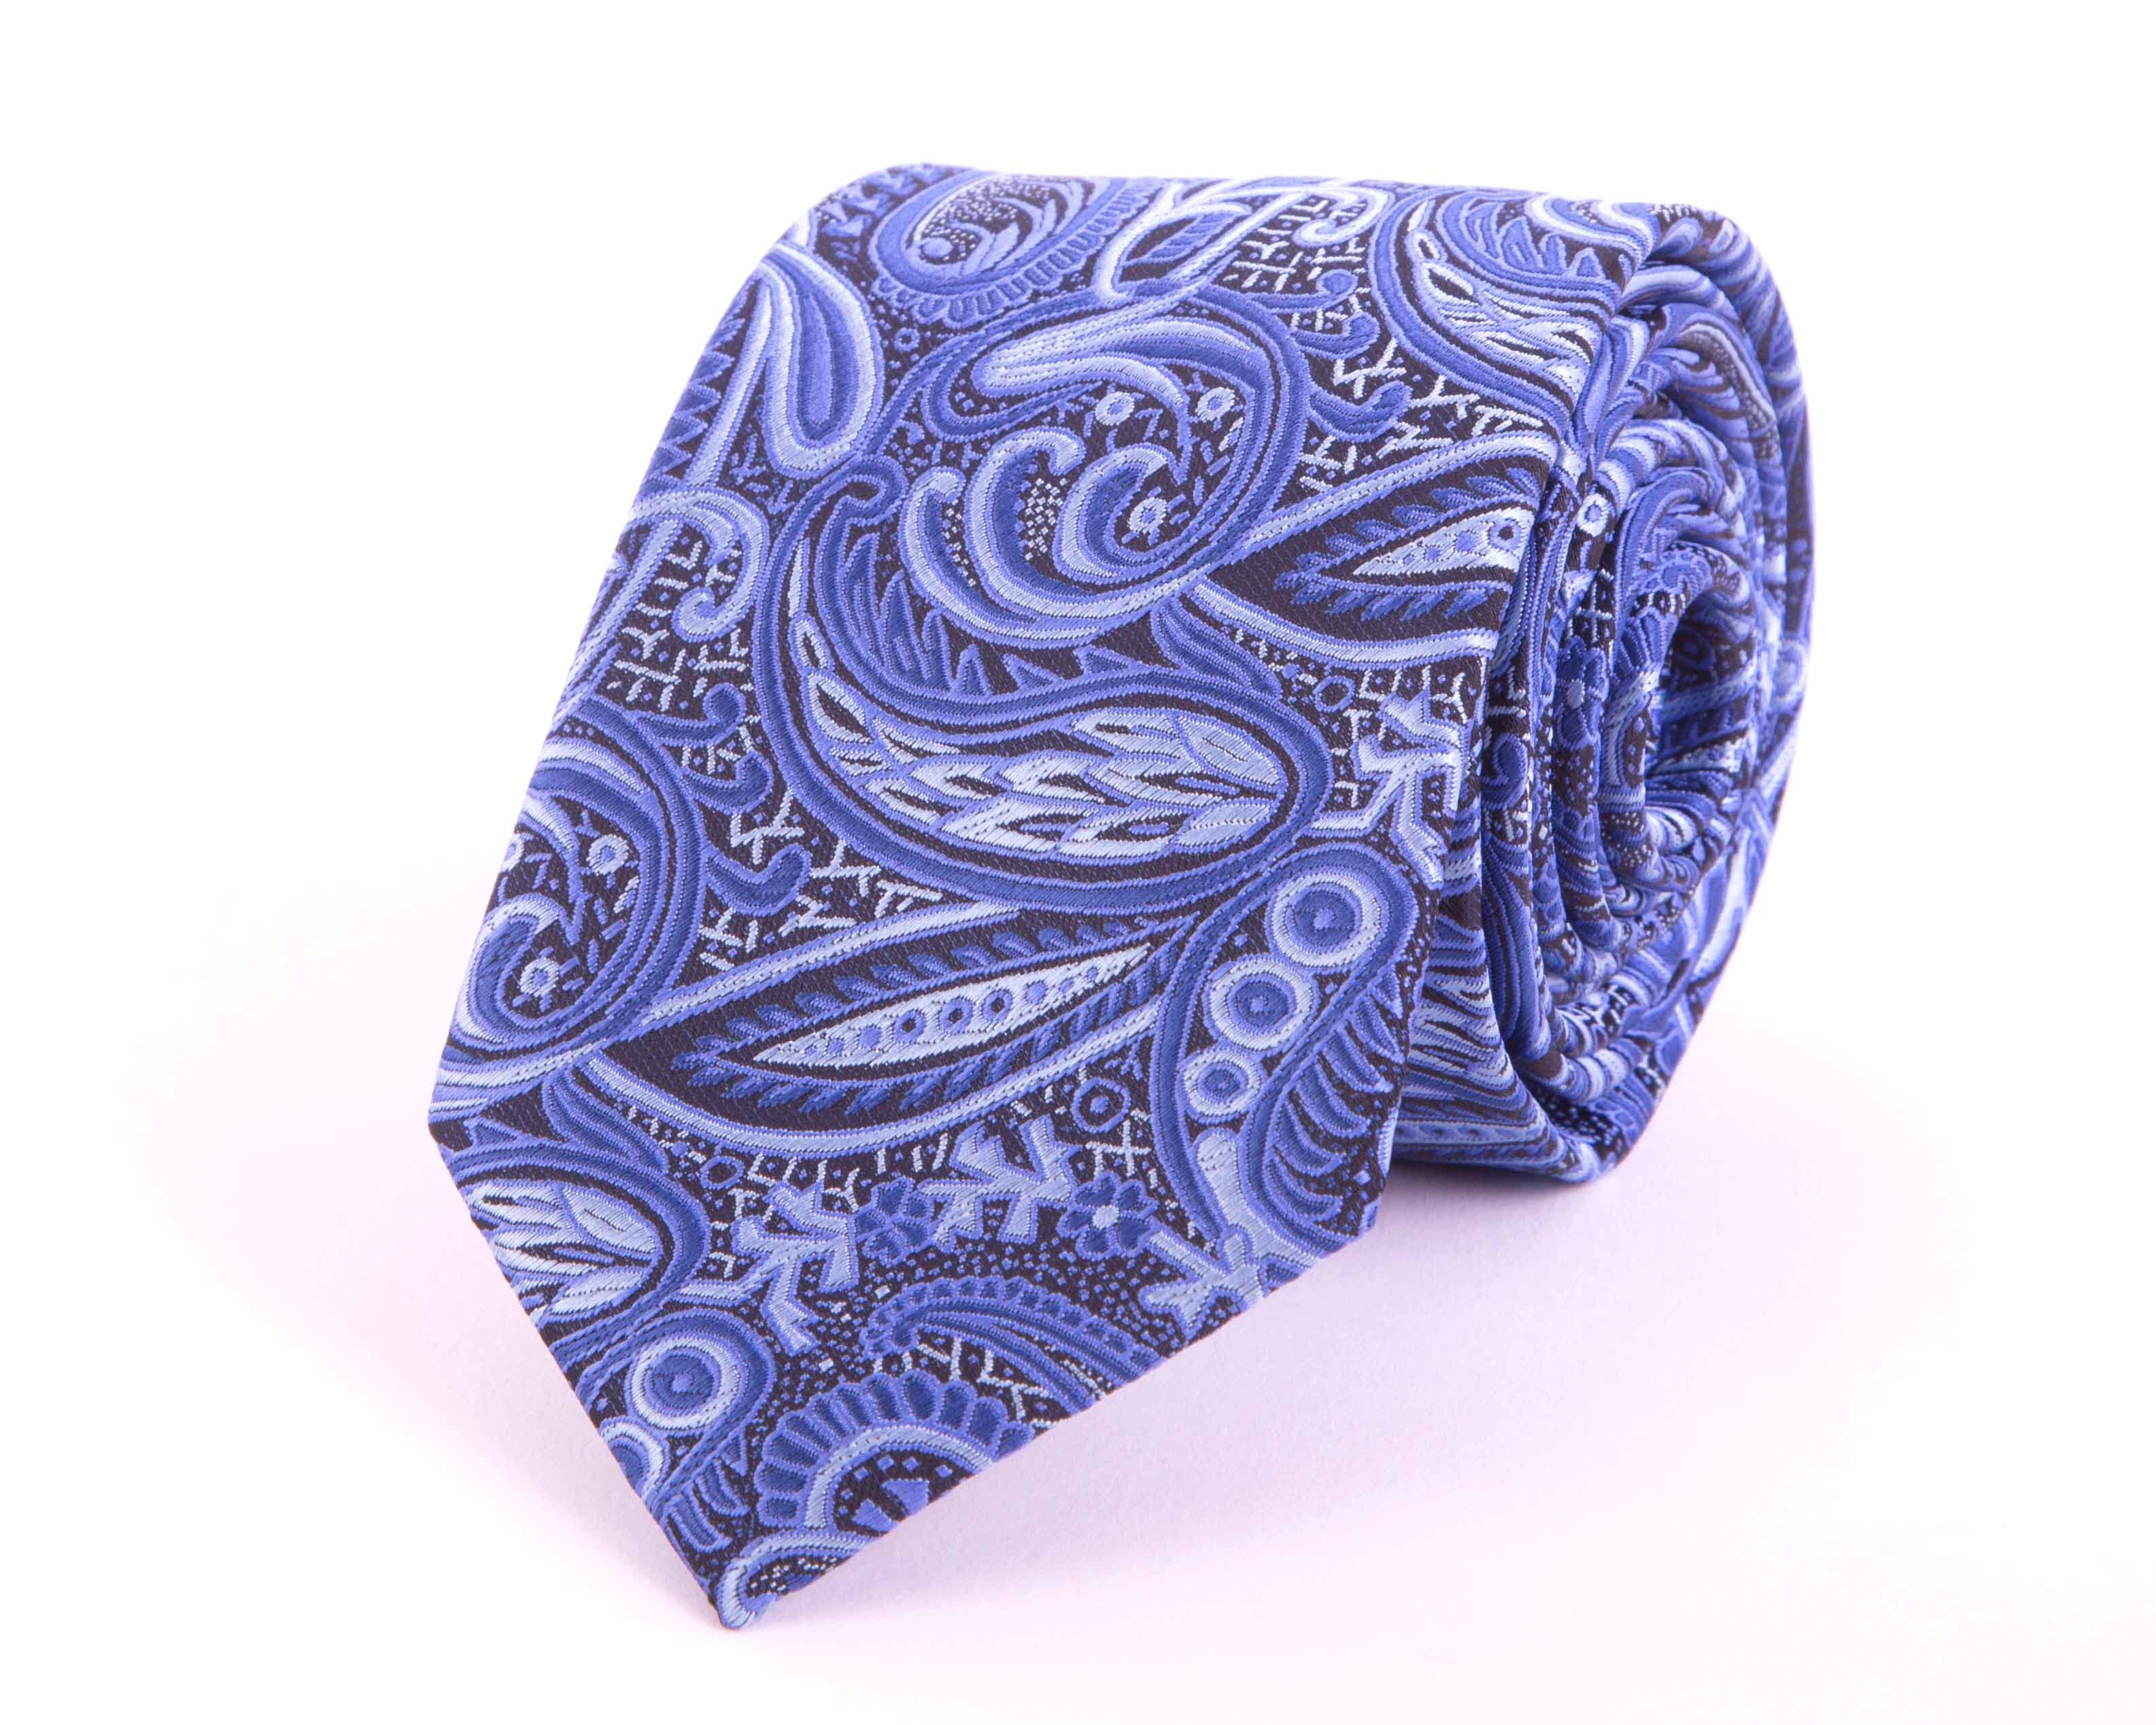 Shop Polyester Ties fit for a Royal wedding